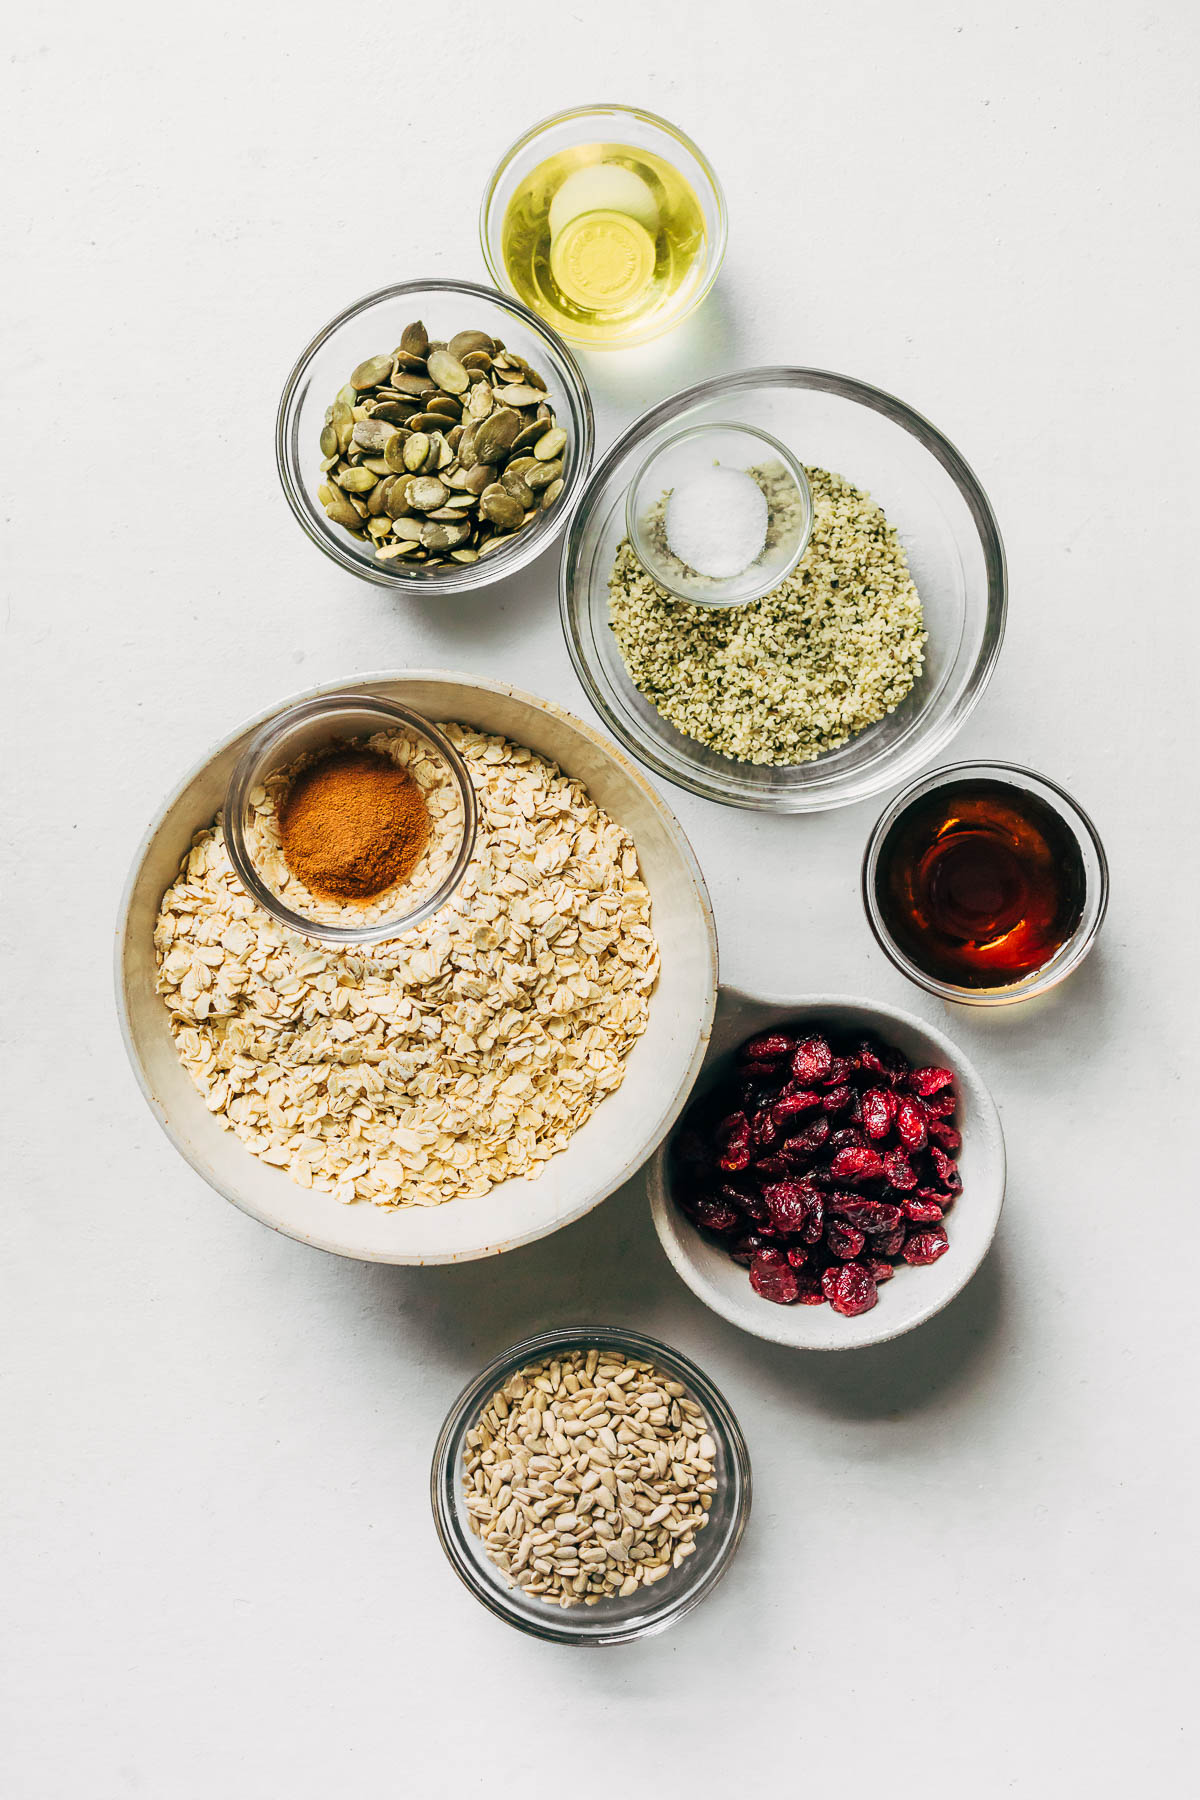 Ingredients to make homemade granola with seeds and maple syrup.